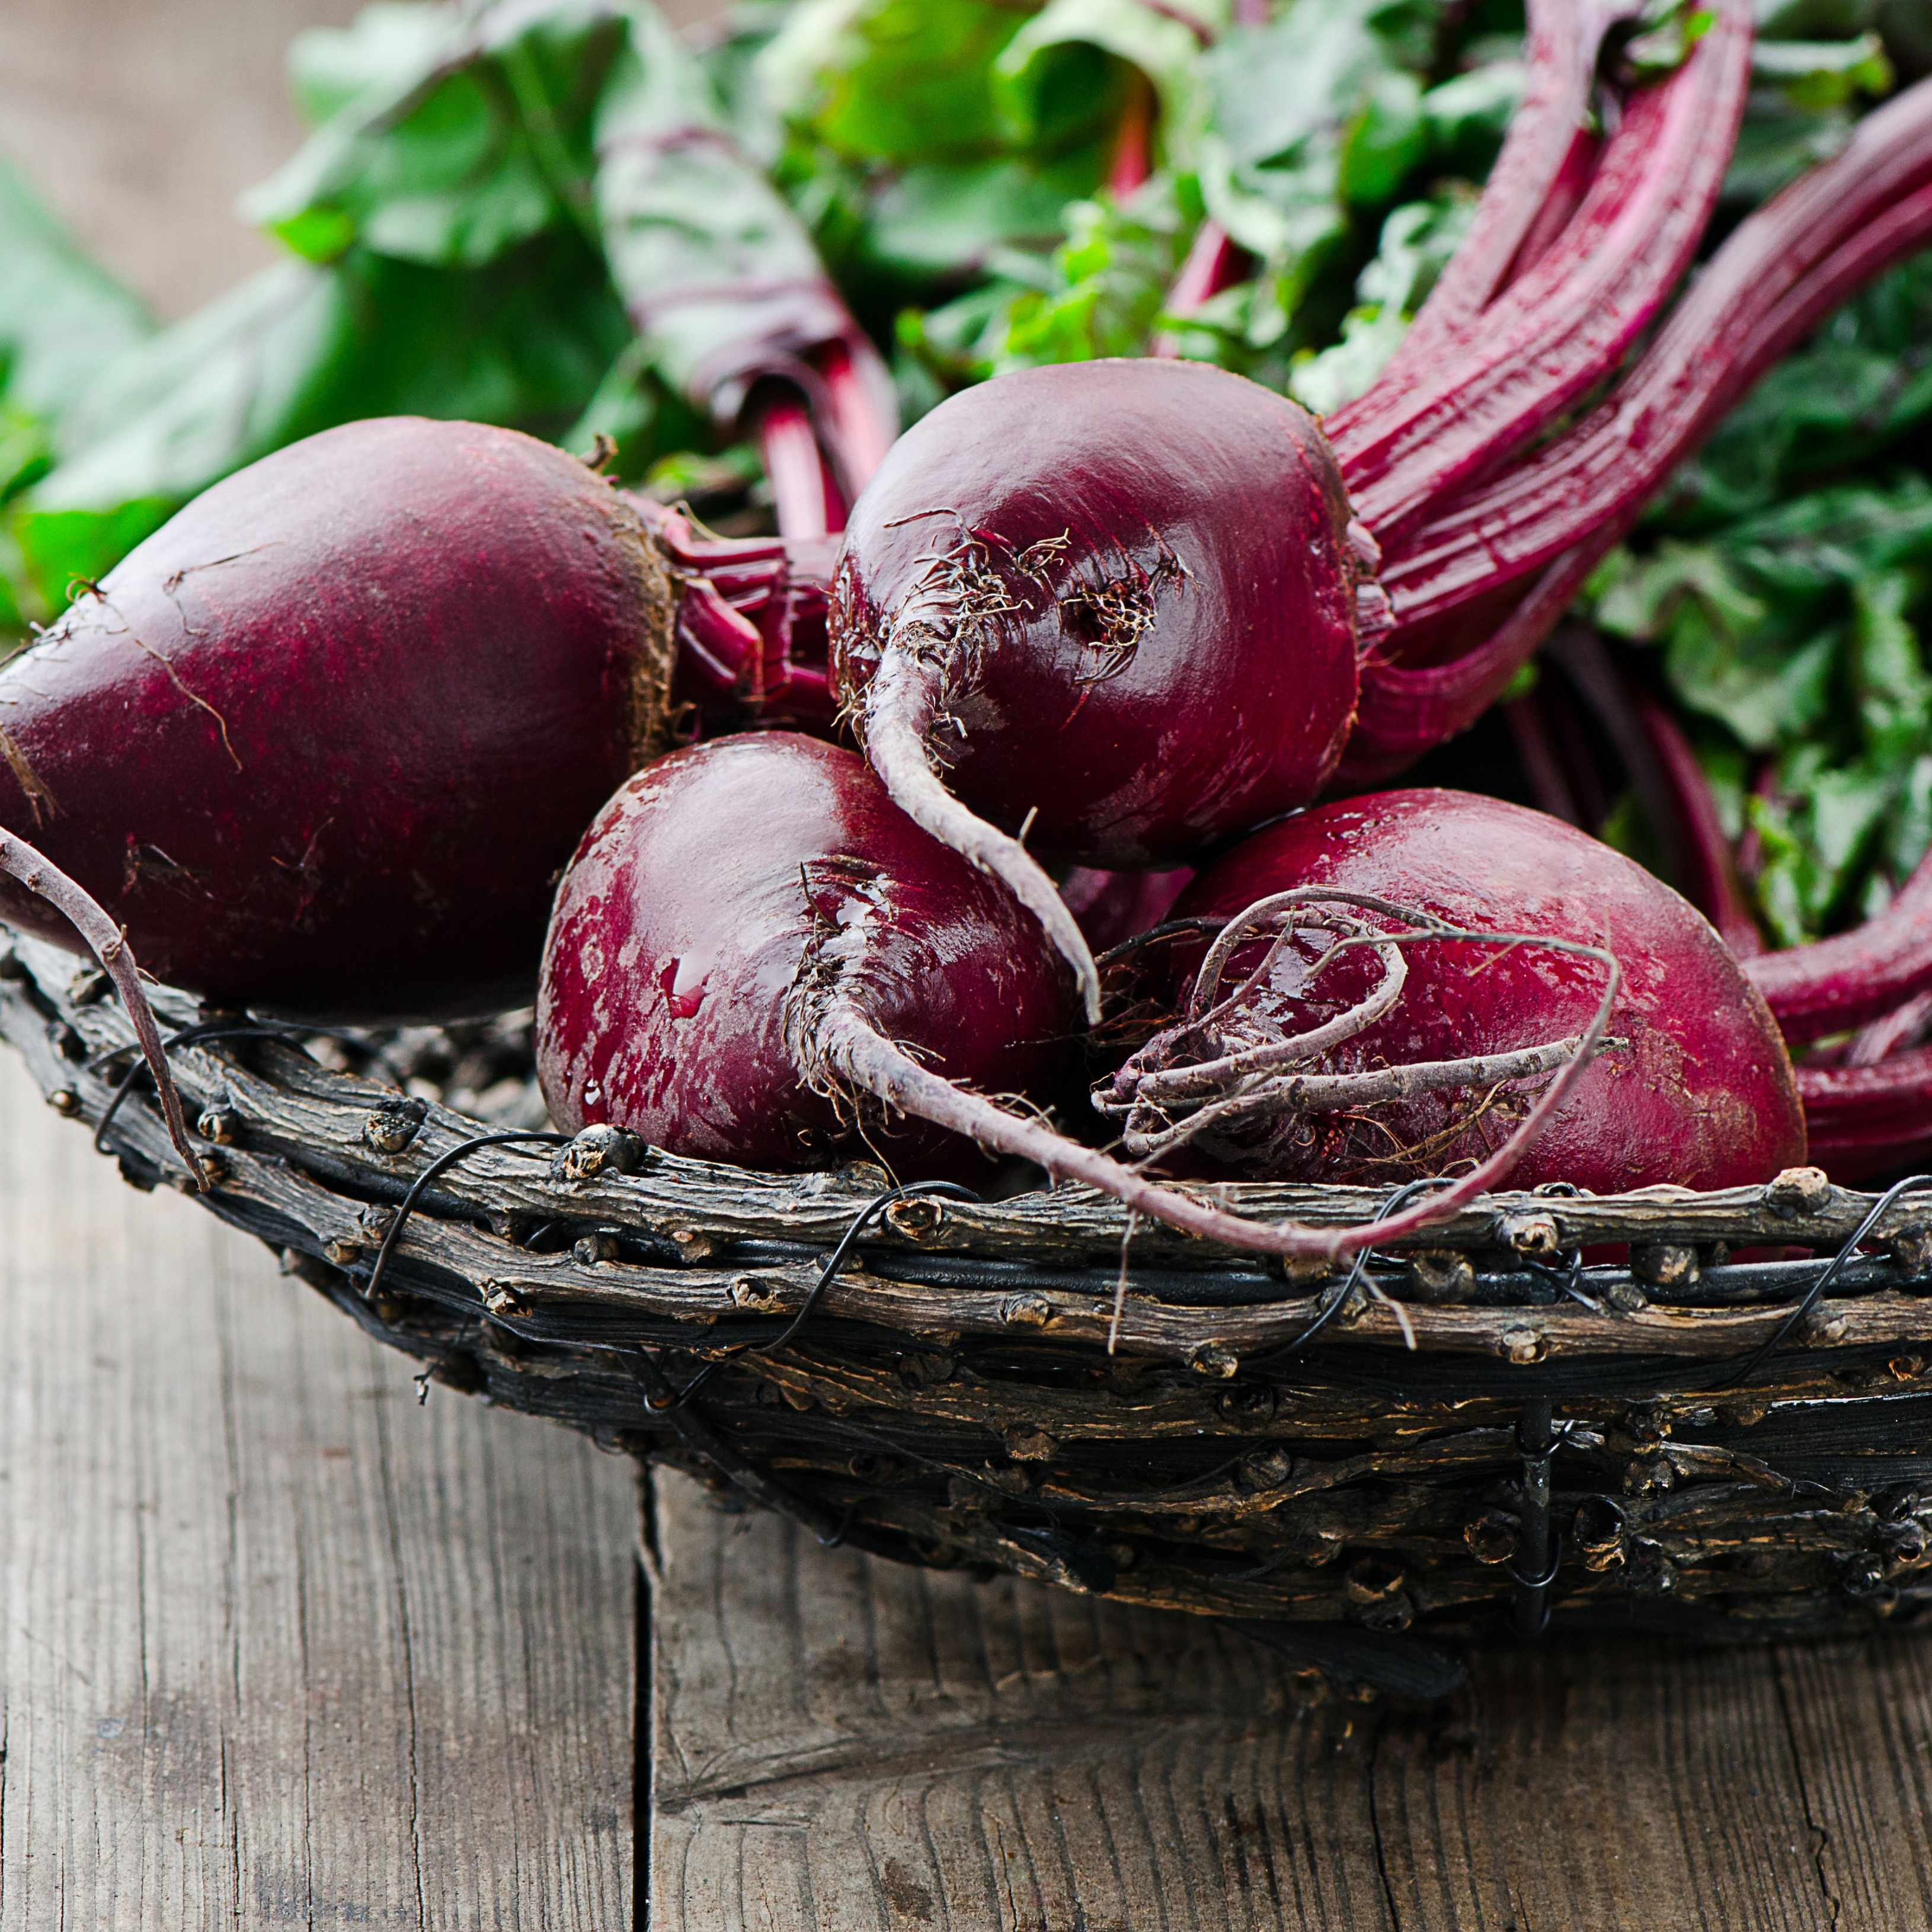 a bunch of fresh, red beets with green leaves in a wicker basket